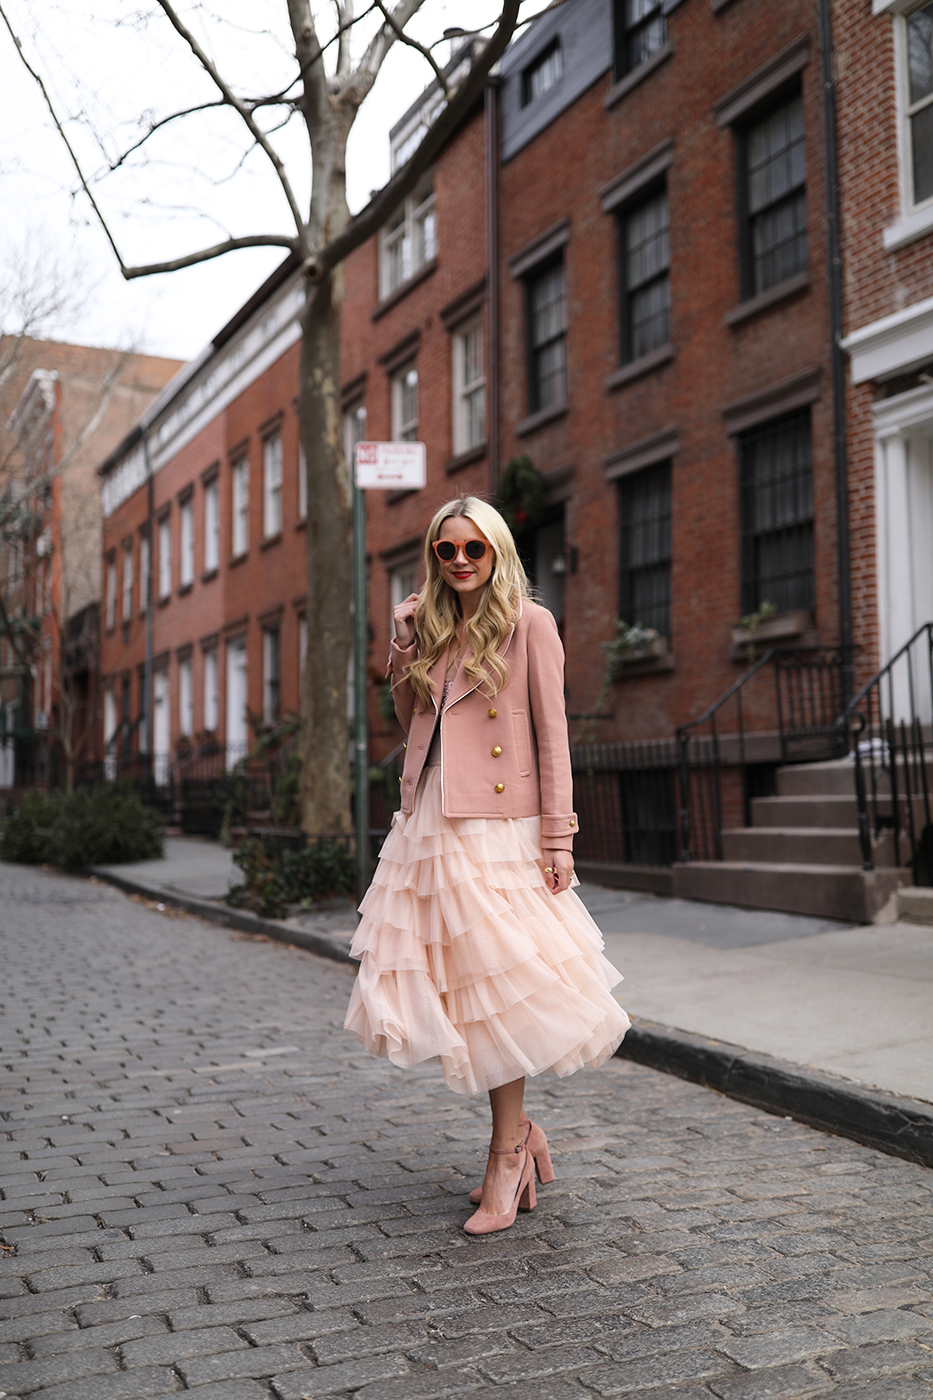 https://i0.wp.com/the-atlantic-pacific.com/wp-content/uploads/2017/01/blair-eadie-atlantic-pacific-blogger-nyc-west-village-winter-outfit-holiday.jpg